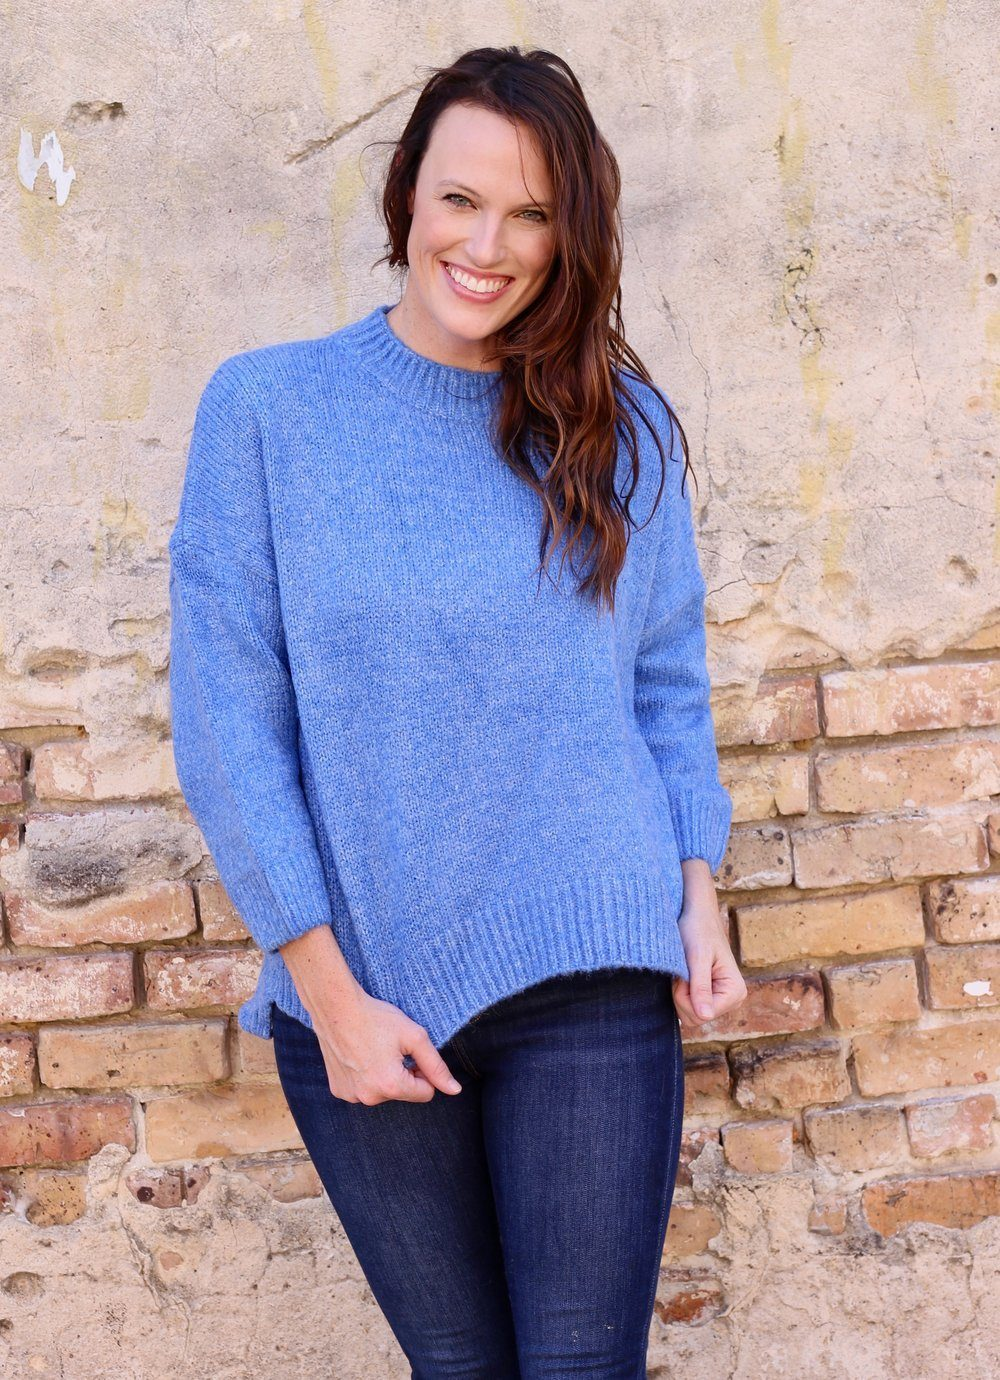 Here We Go Royal Blue Heathered Sweater - Caroline Hill